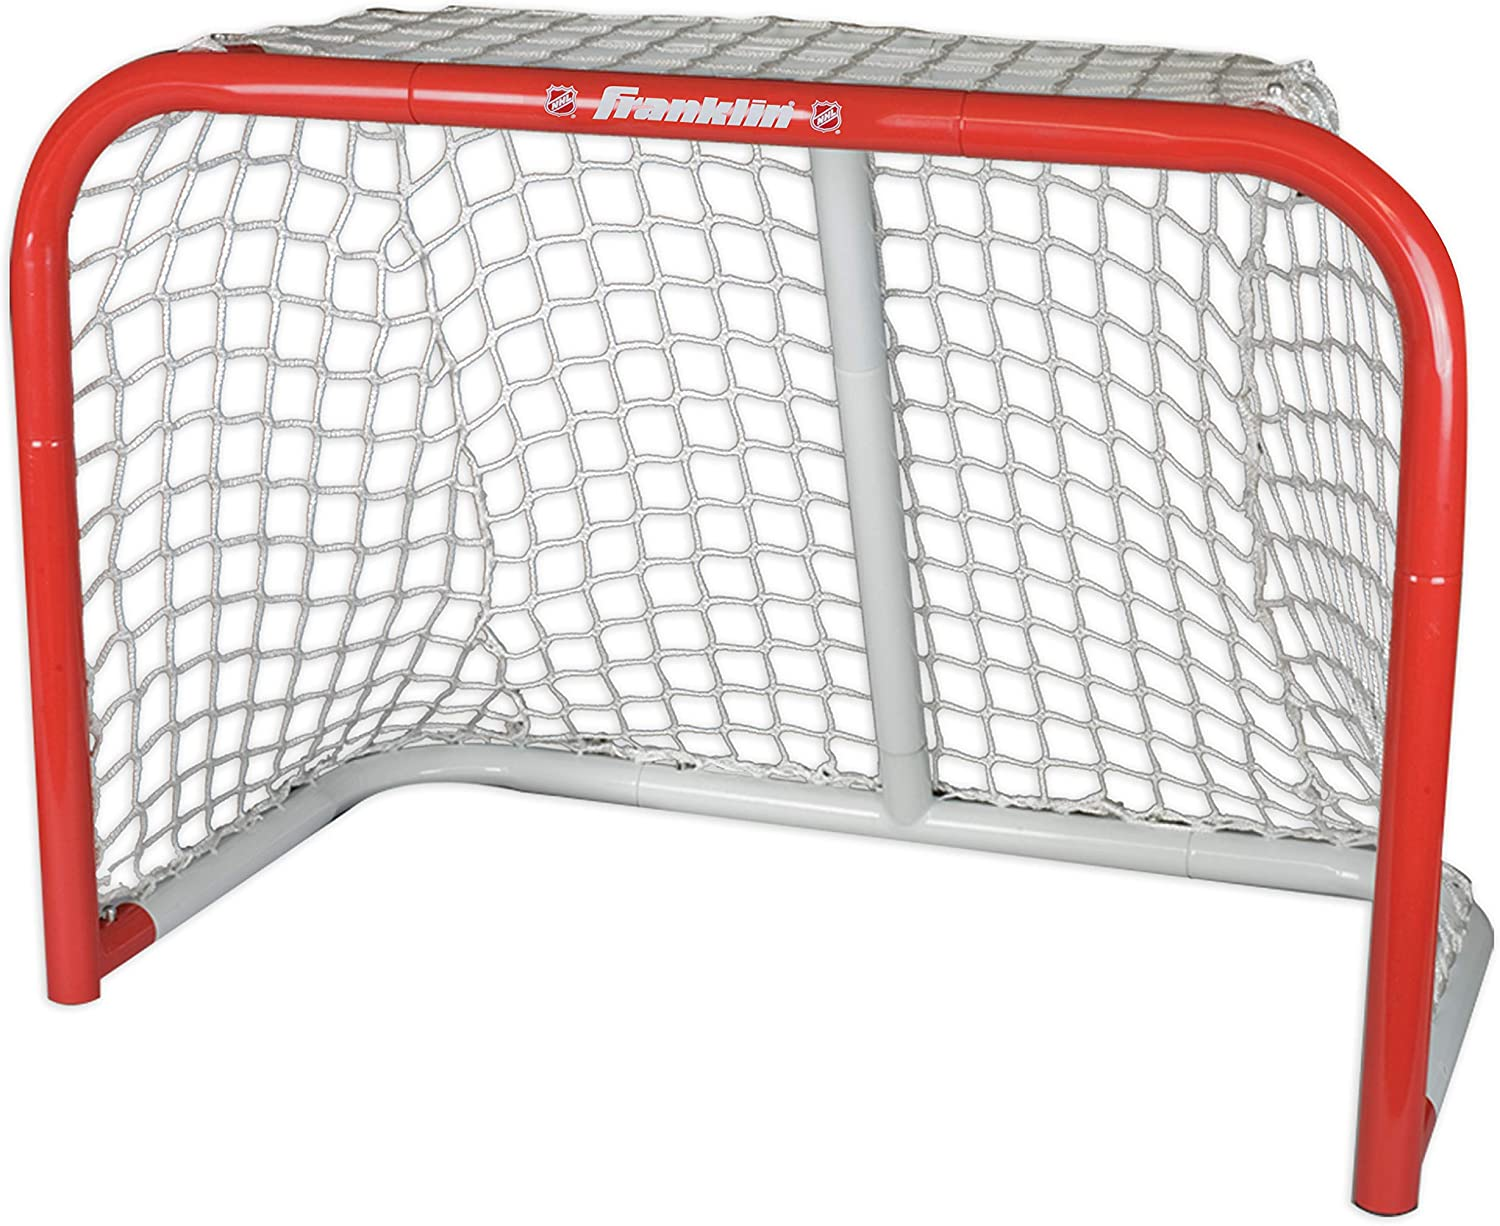 "Franklin Sports NHL Steel Street Hockey Goal - Kids Street Hockey Net - 28"" x 20"" - Perfect for Skill Training : Hockey Nets : Sports & Outdoors"